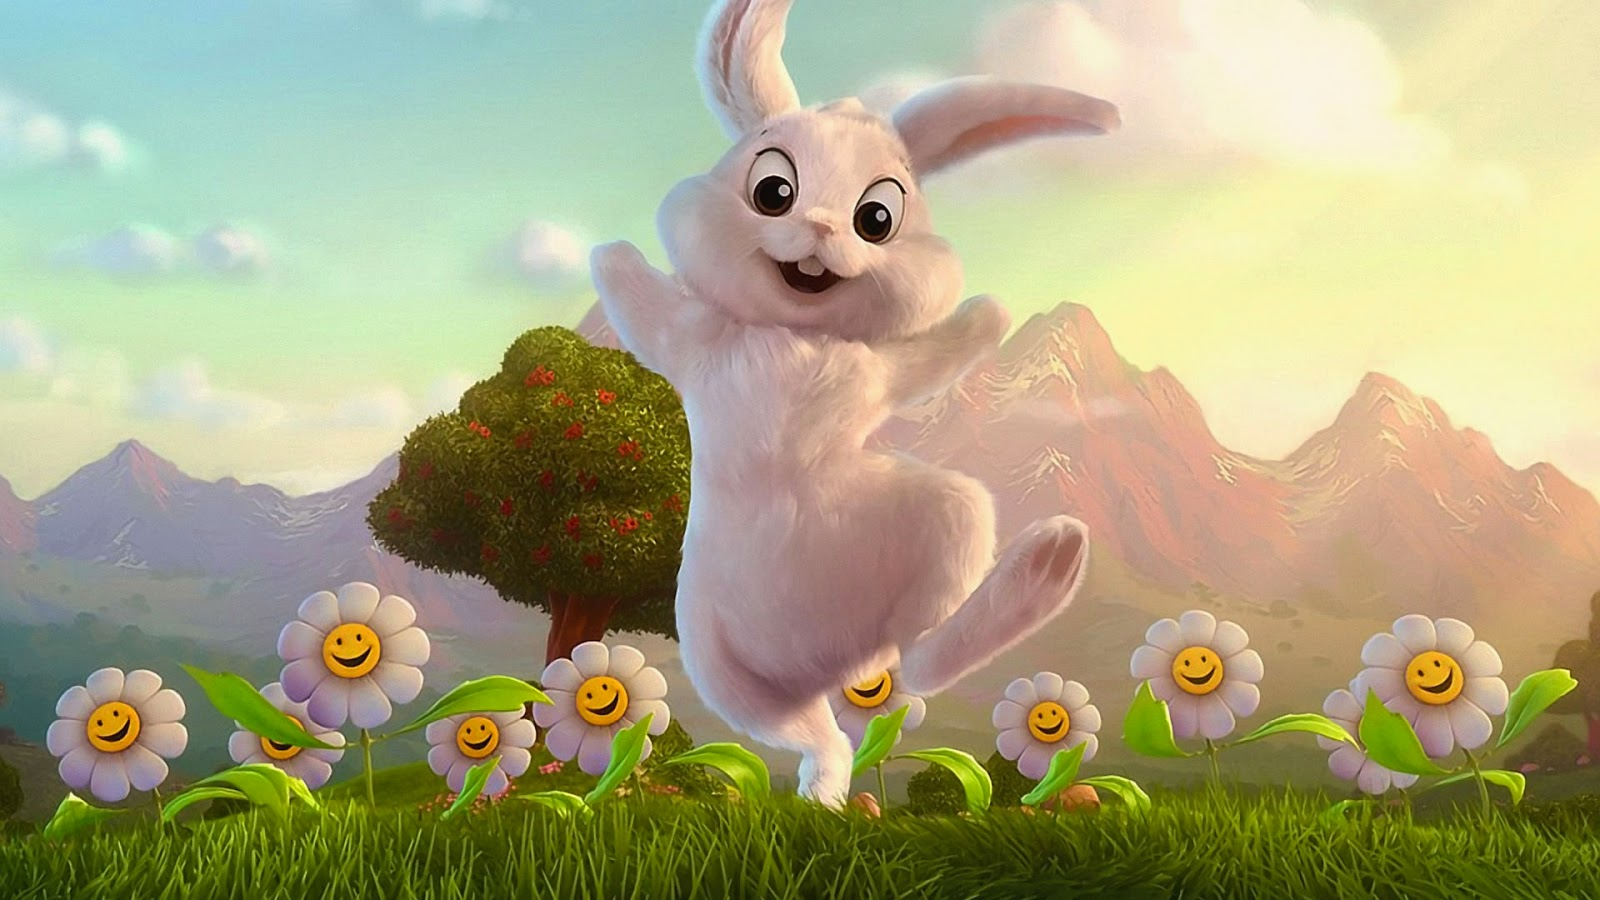 Funny-rabit-cartoon-hd-widescreen-Wallpaper-for-desktop-background-new-pictures-for-free